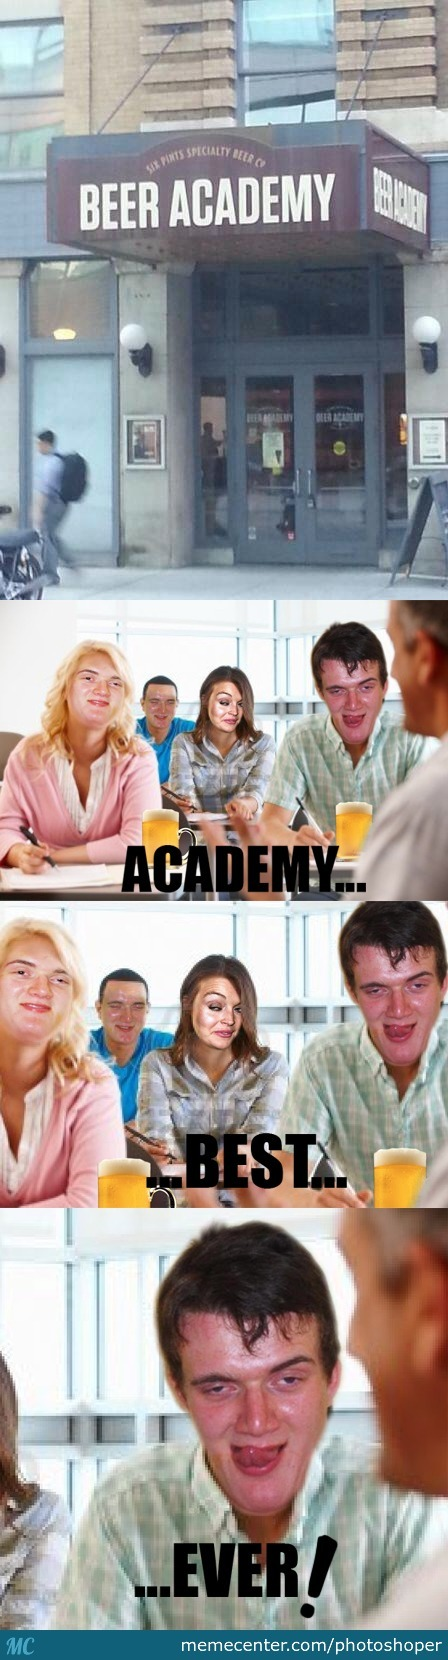 Best Academy Ever!